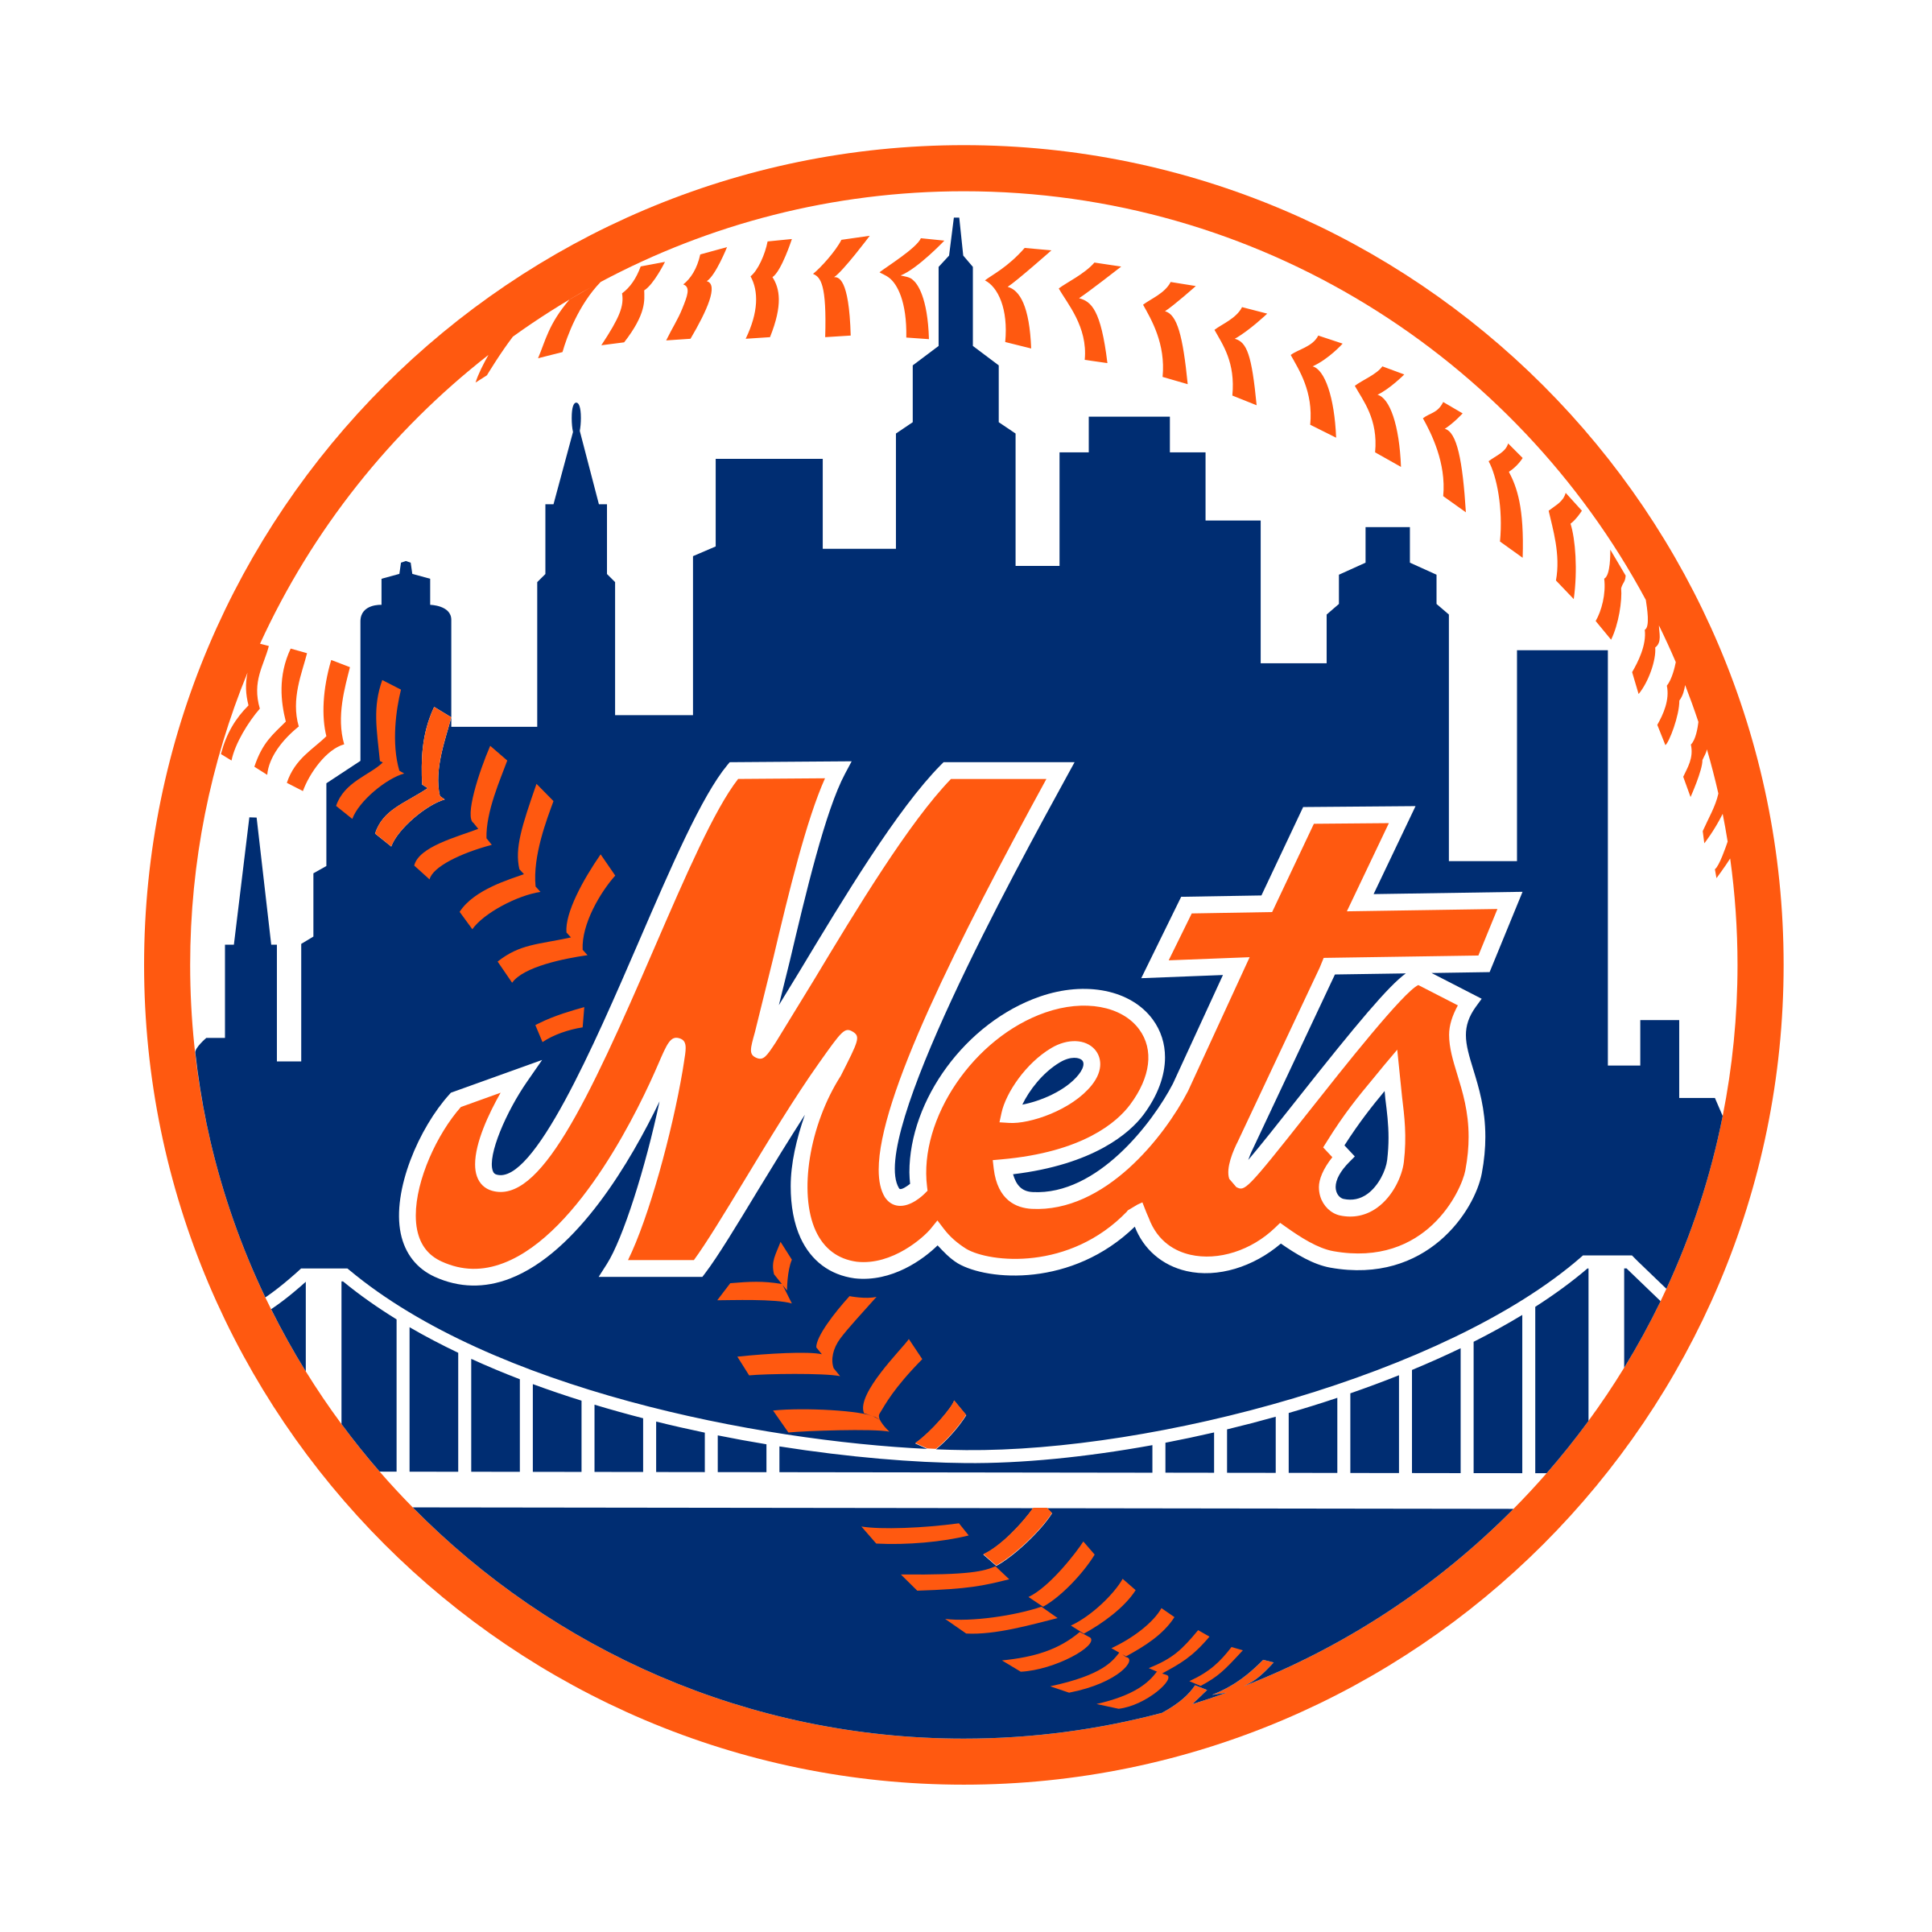 New York Mets Logo Png Transparent Svg Vector Freebie Supply